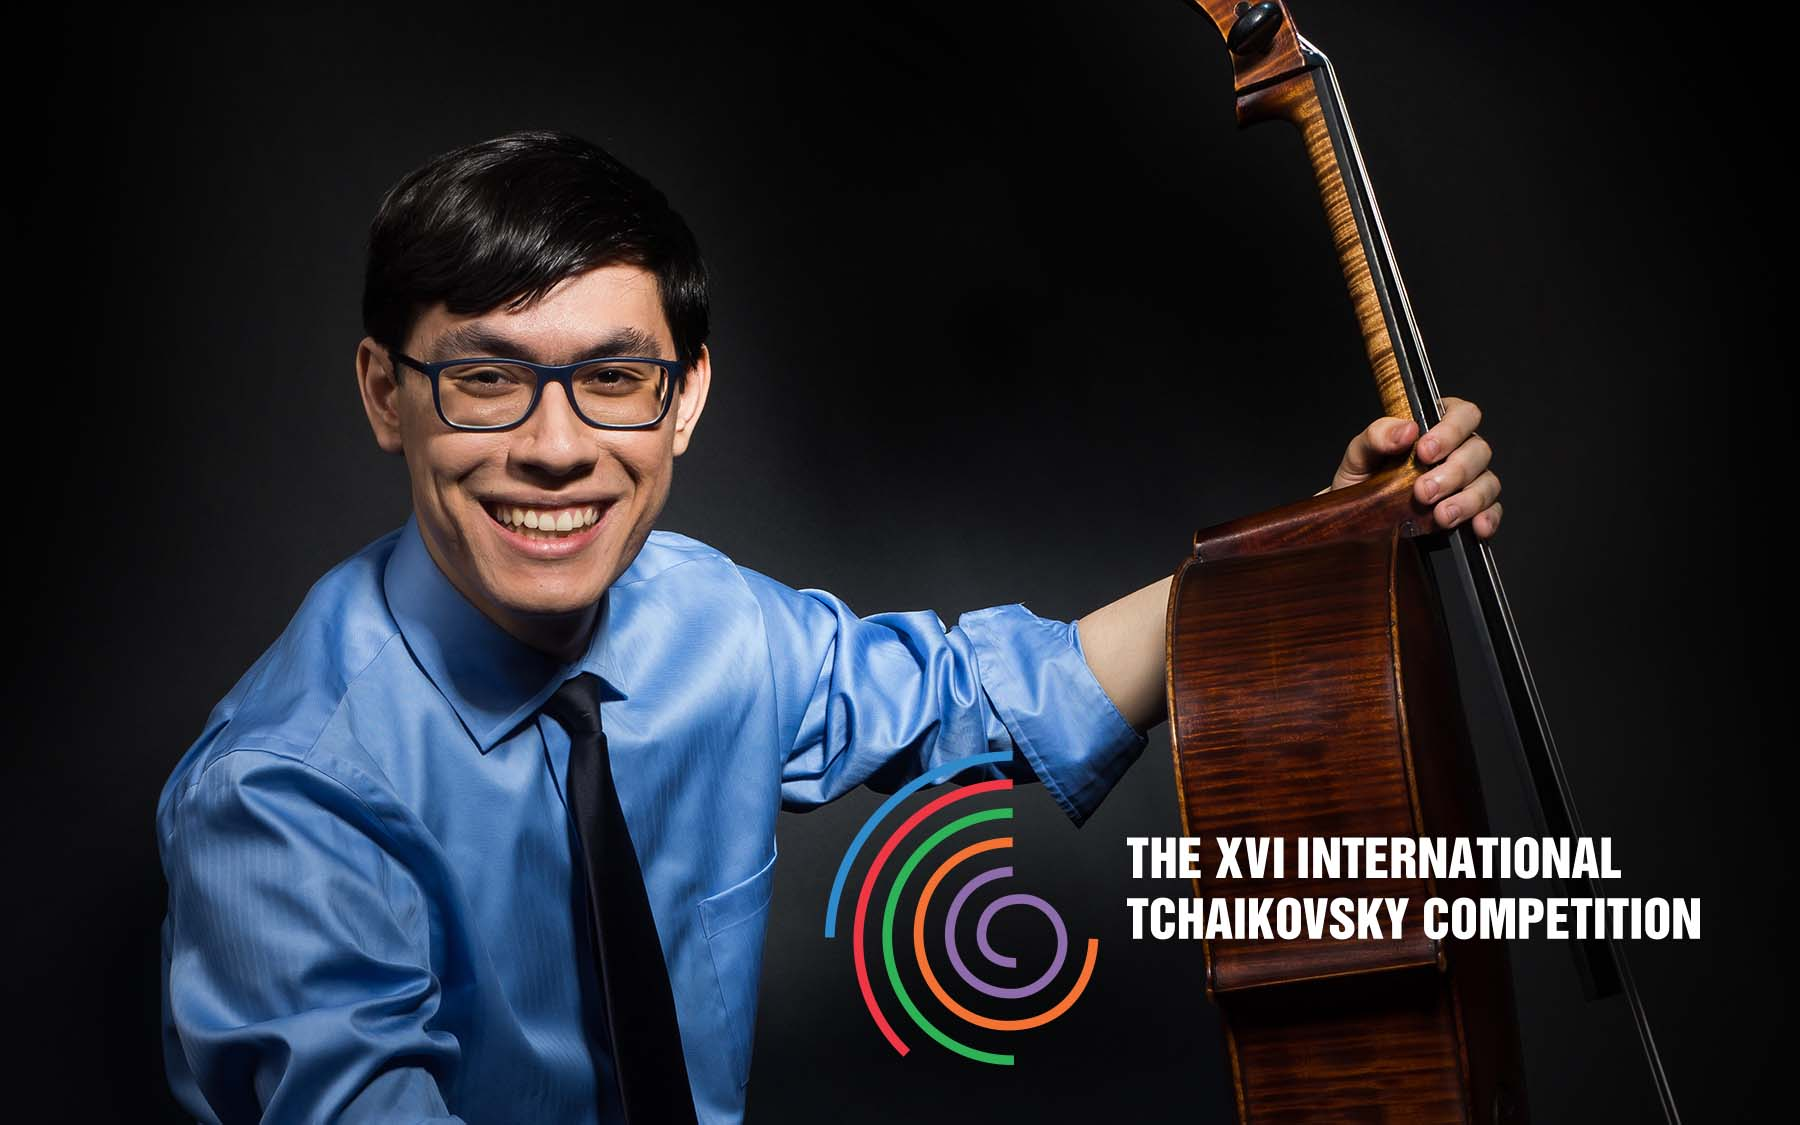 photo of Fung Ziatomir with Cello- XVI International Tchaikovsky Competition